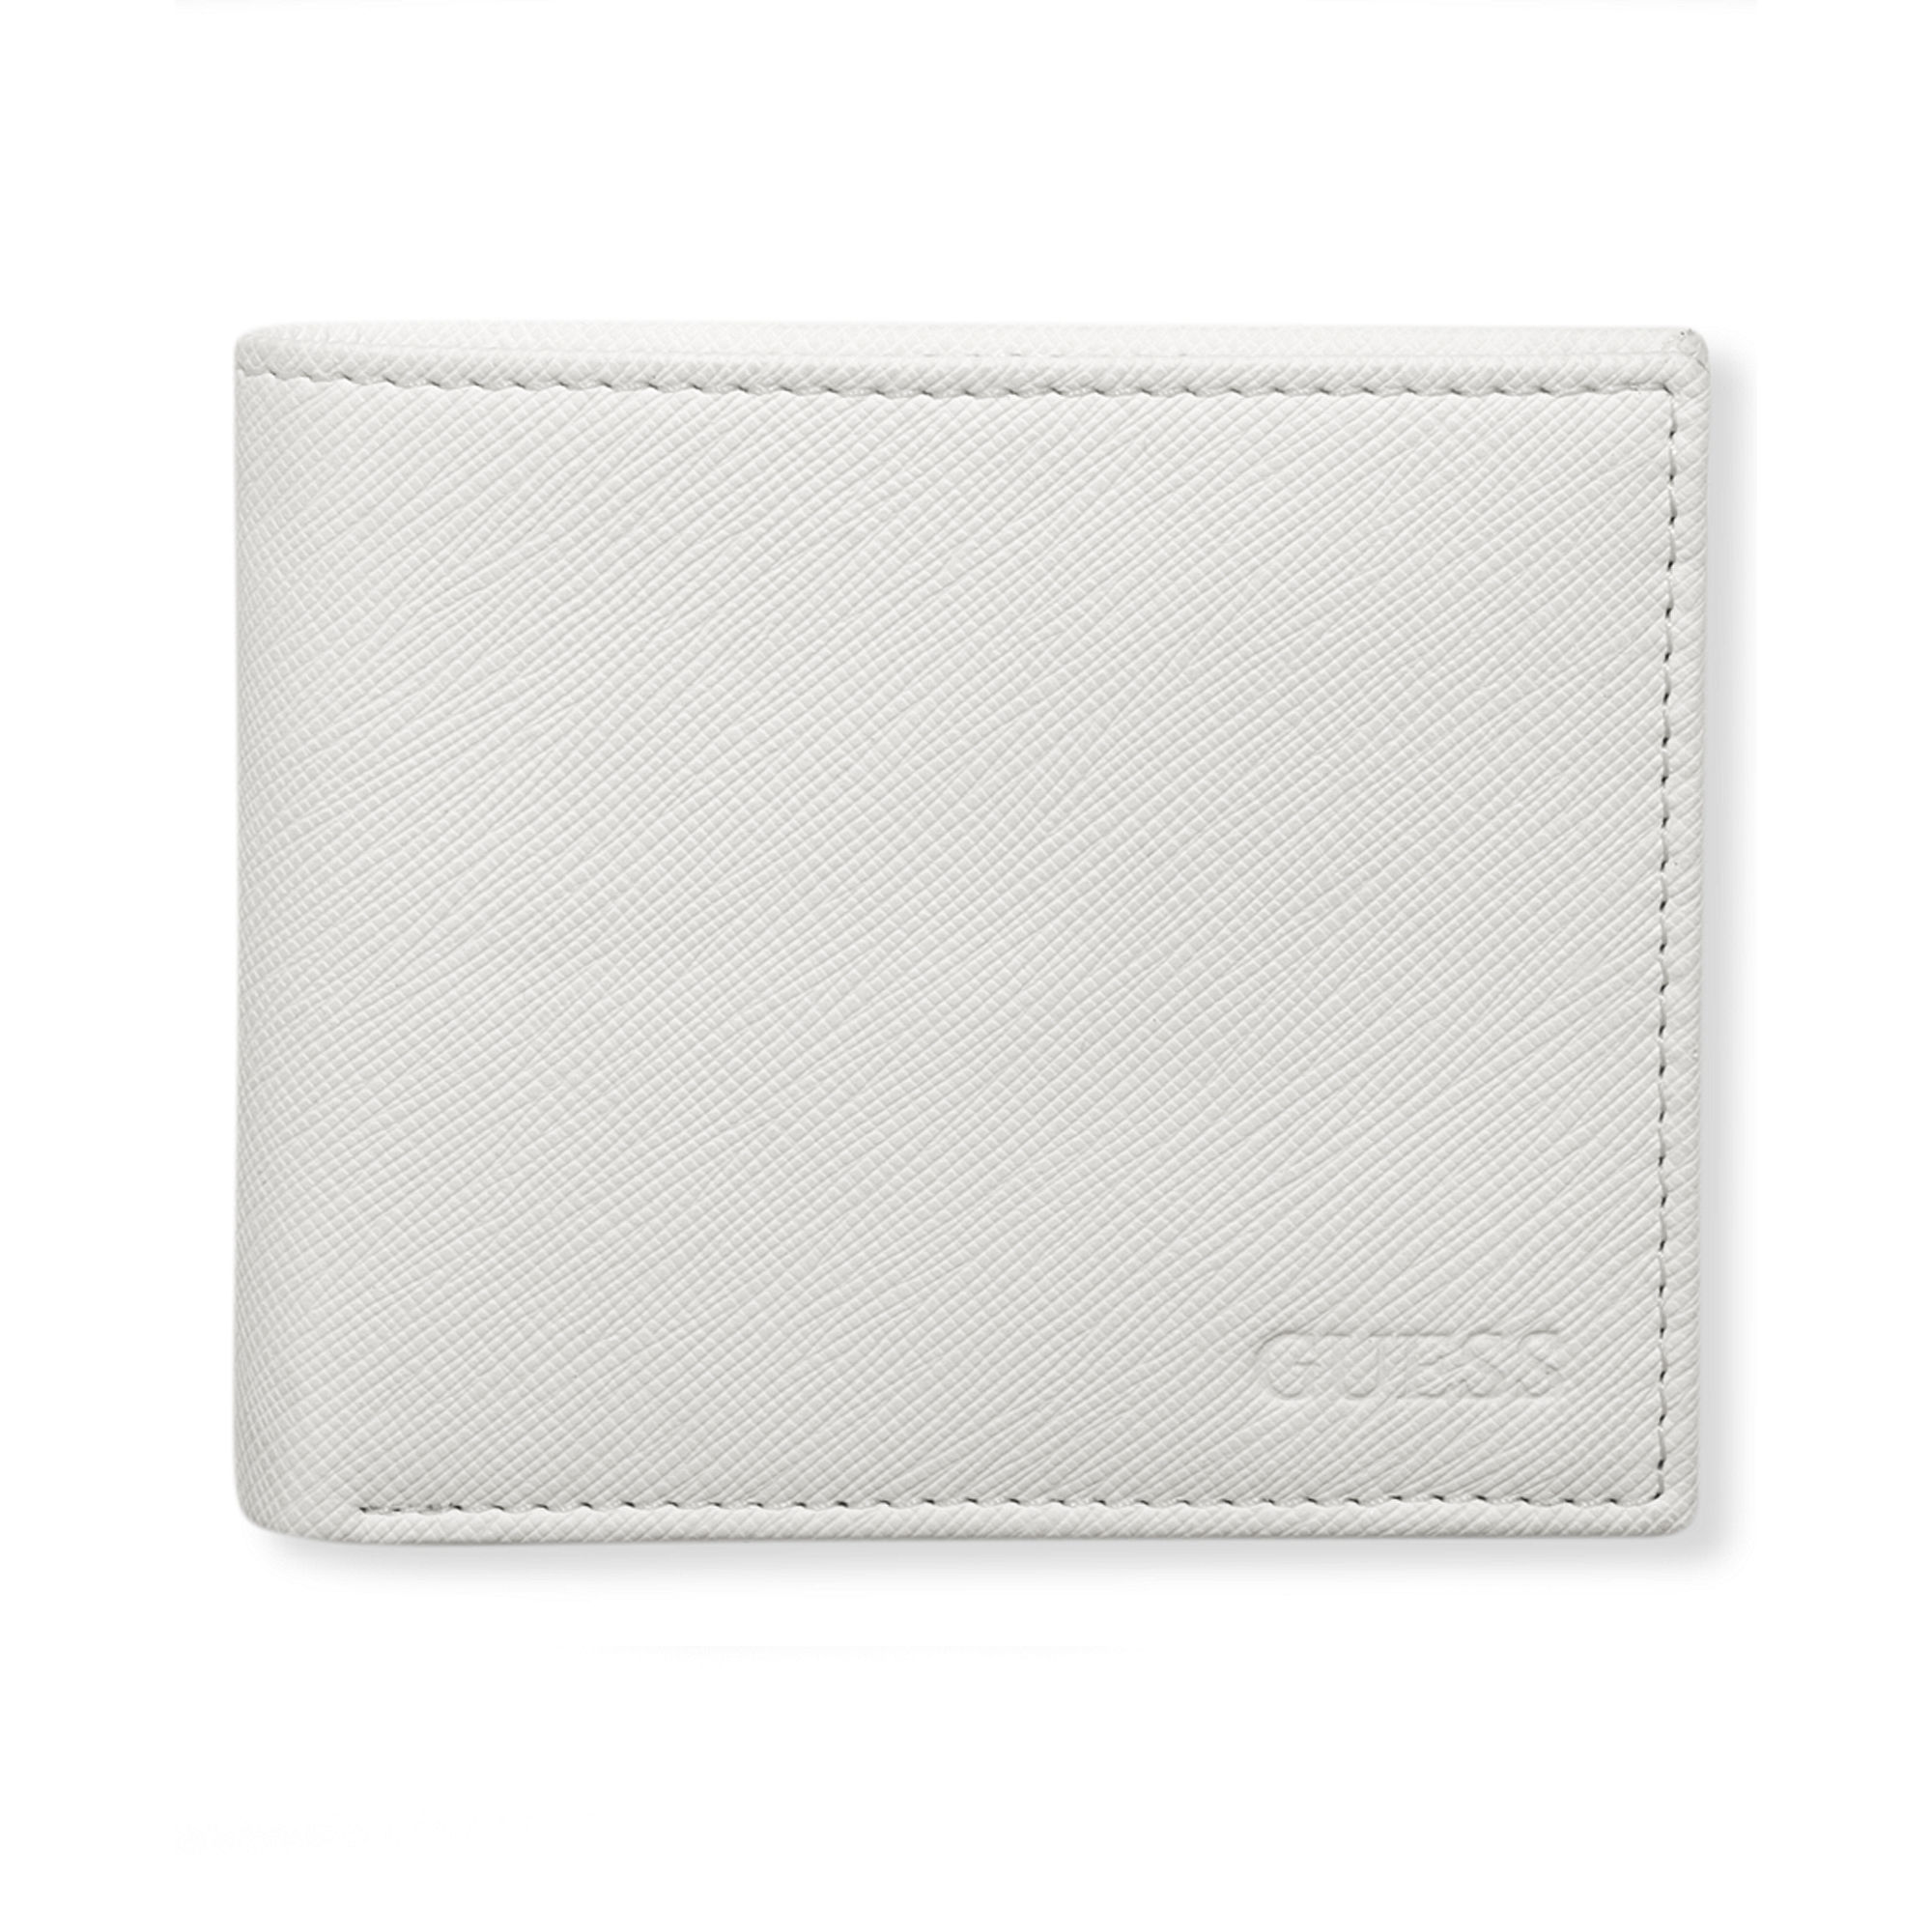 77c8390f9b00 White Wallet Men - Best Photo Wallet Justiceforkenny.Org